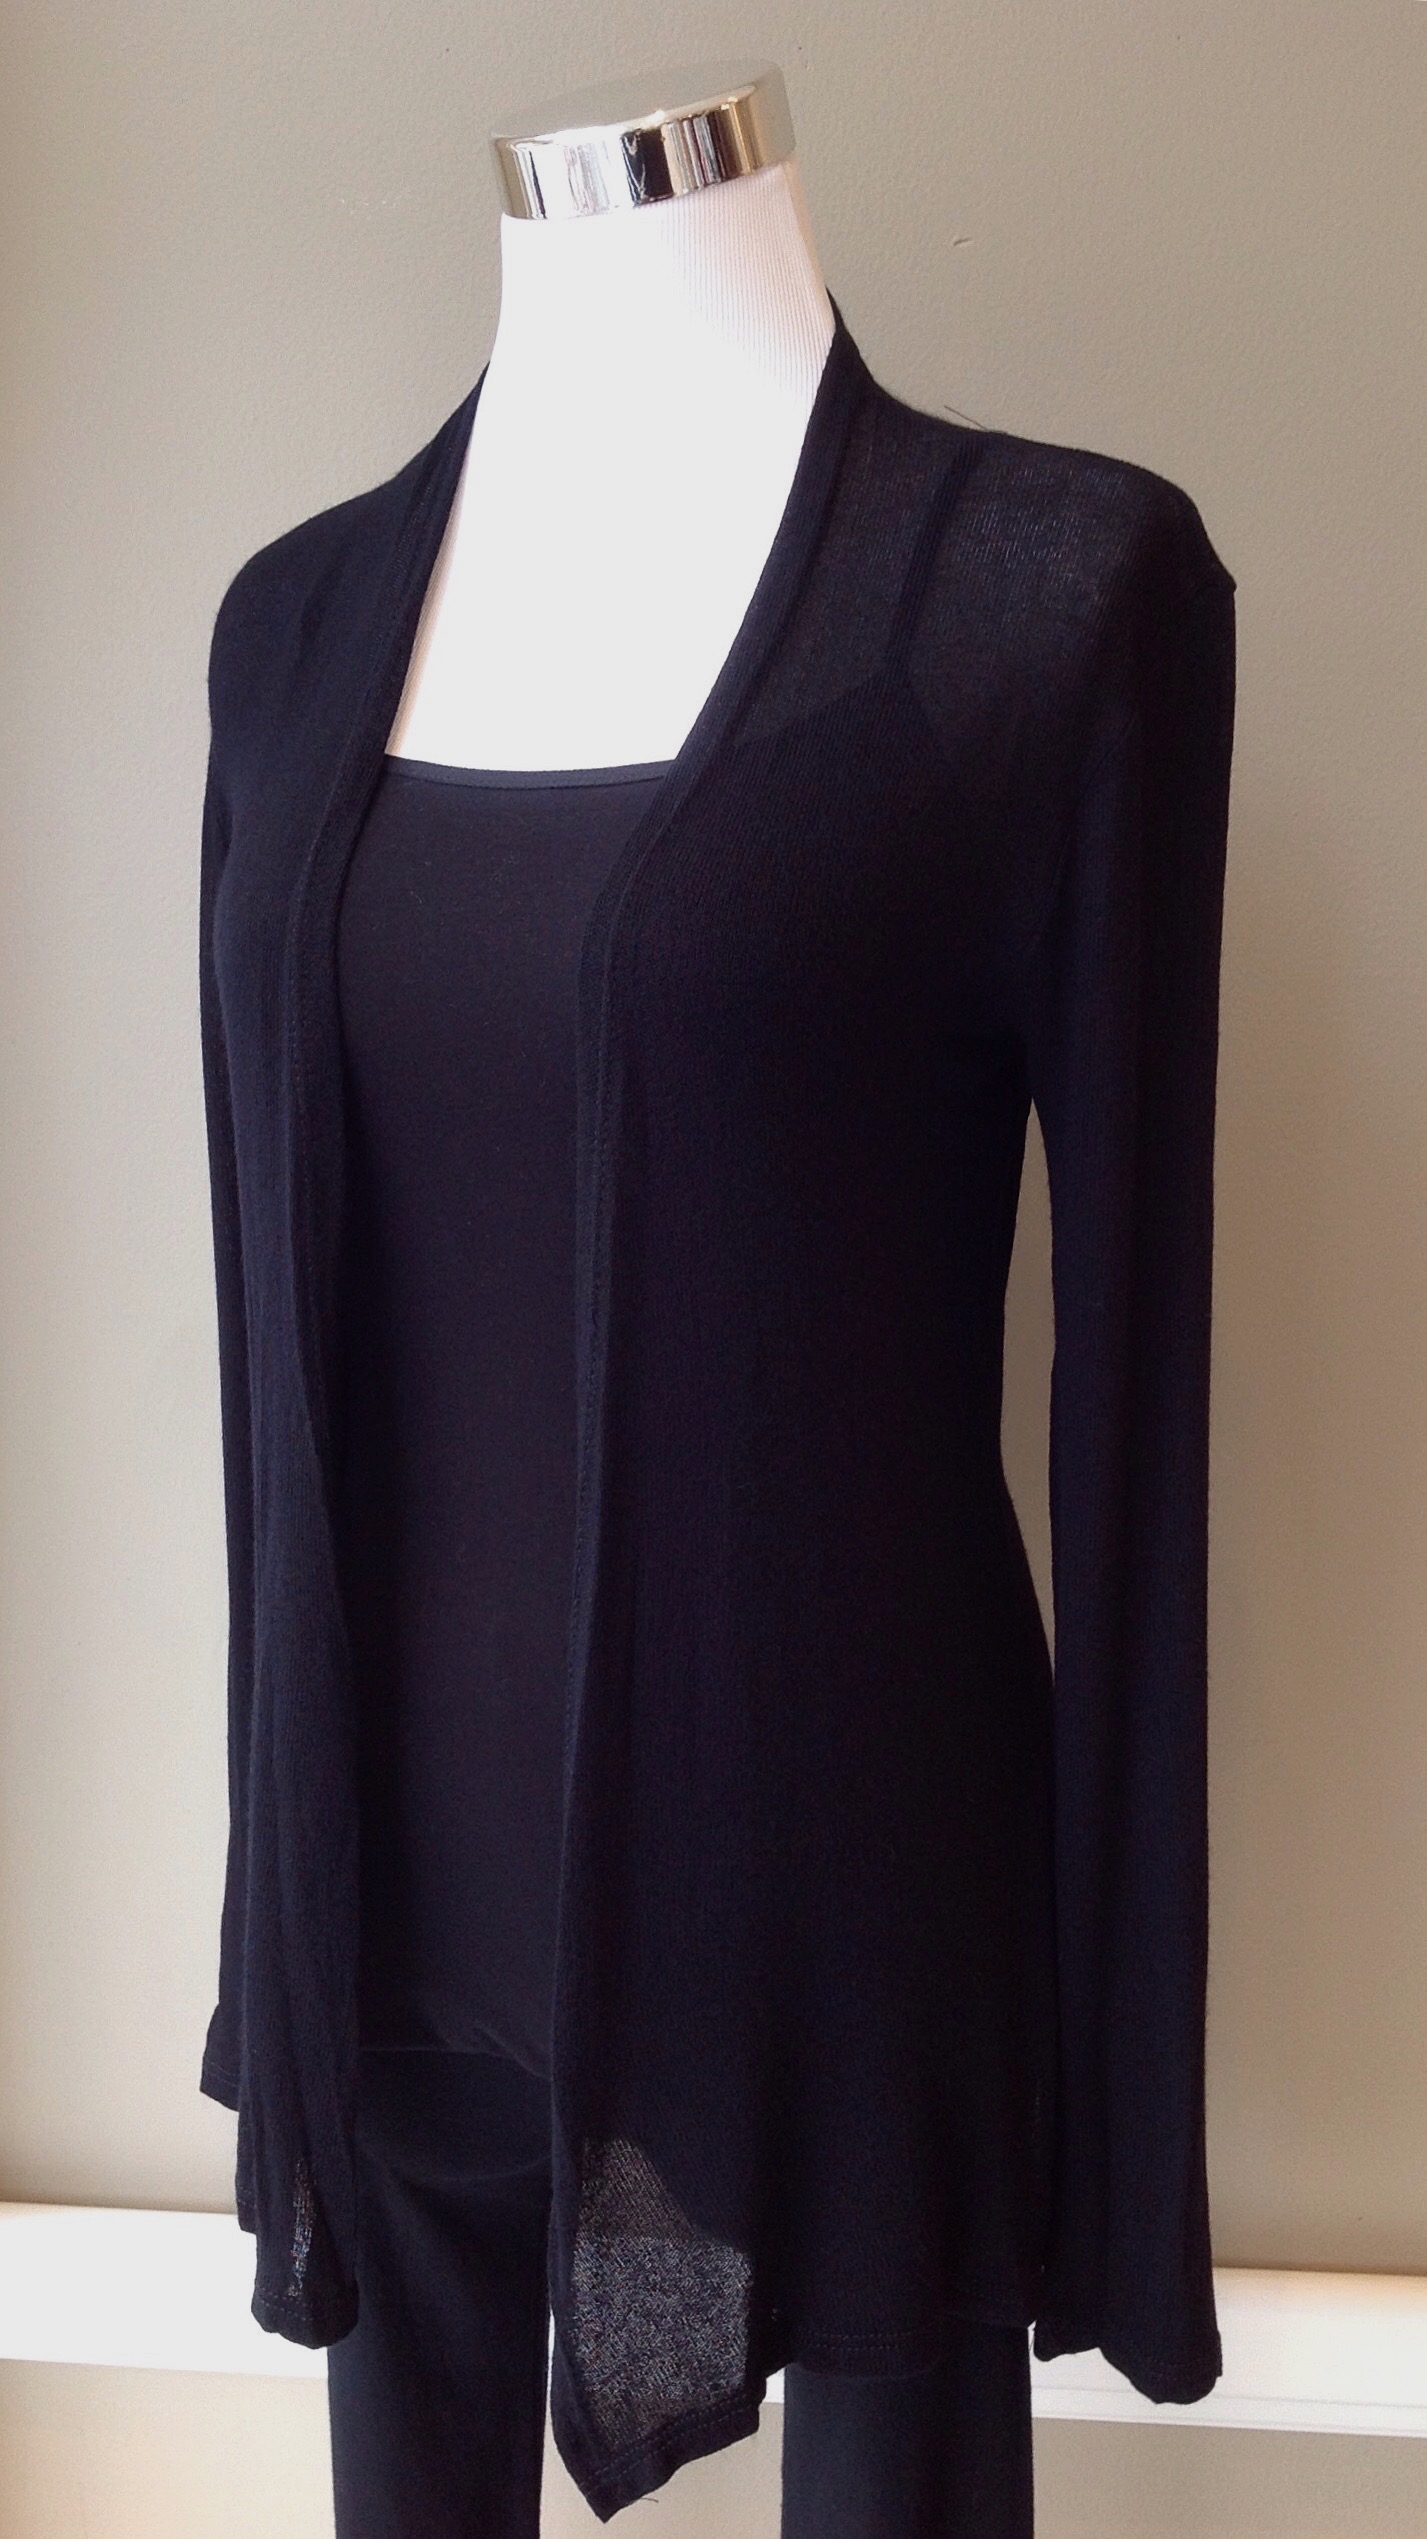 Ultra light knit cardigan in black, $28